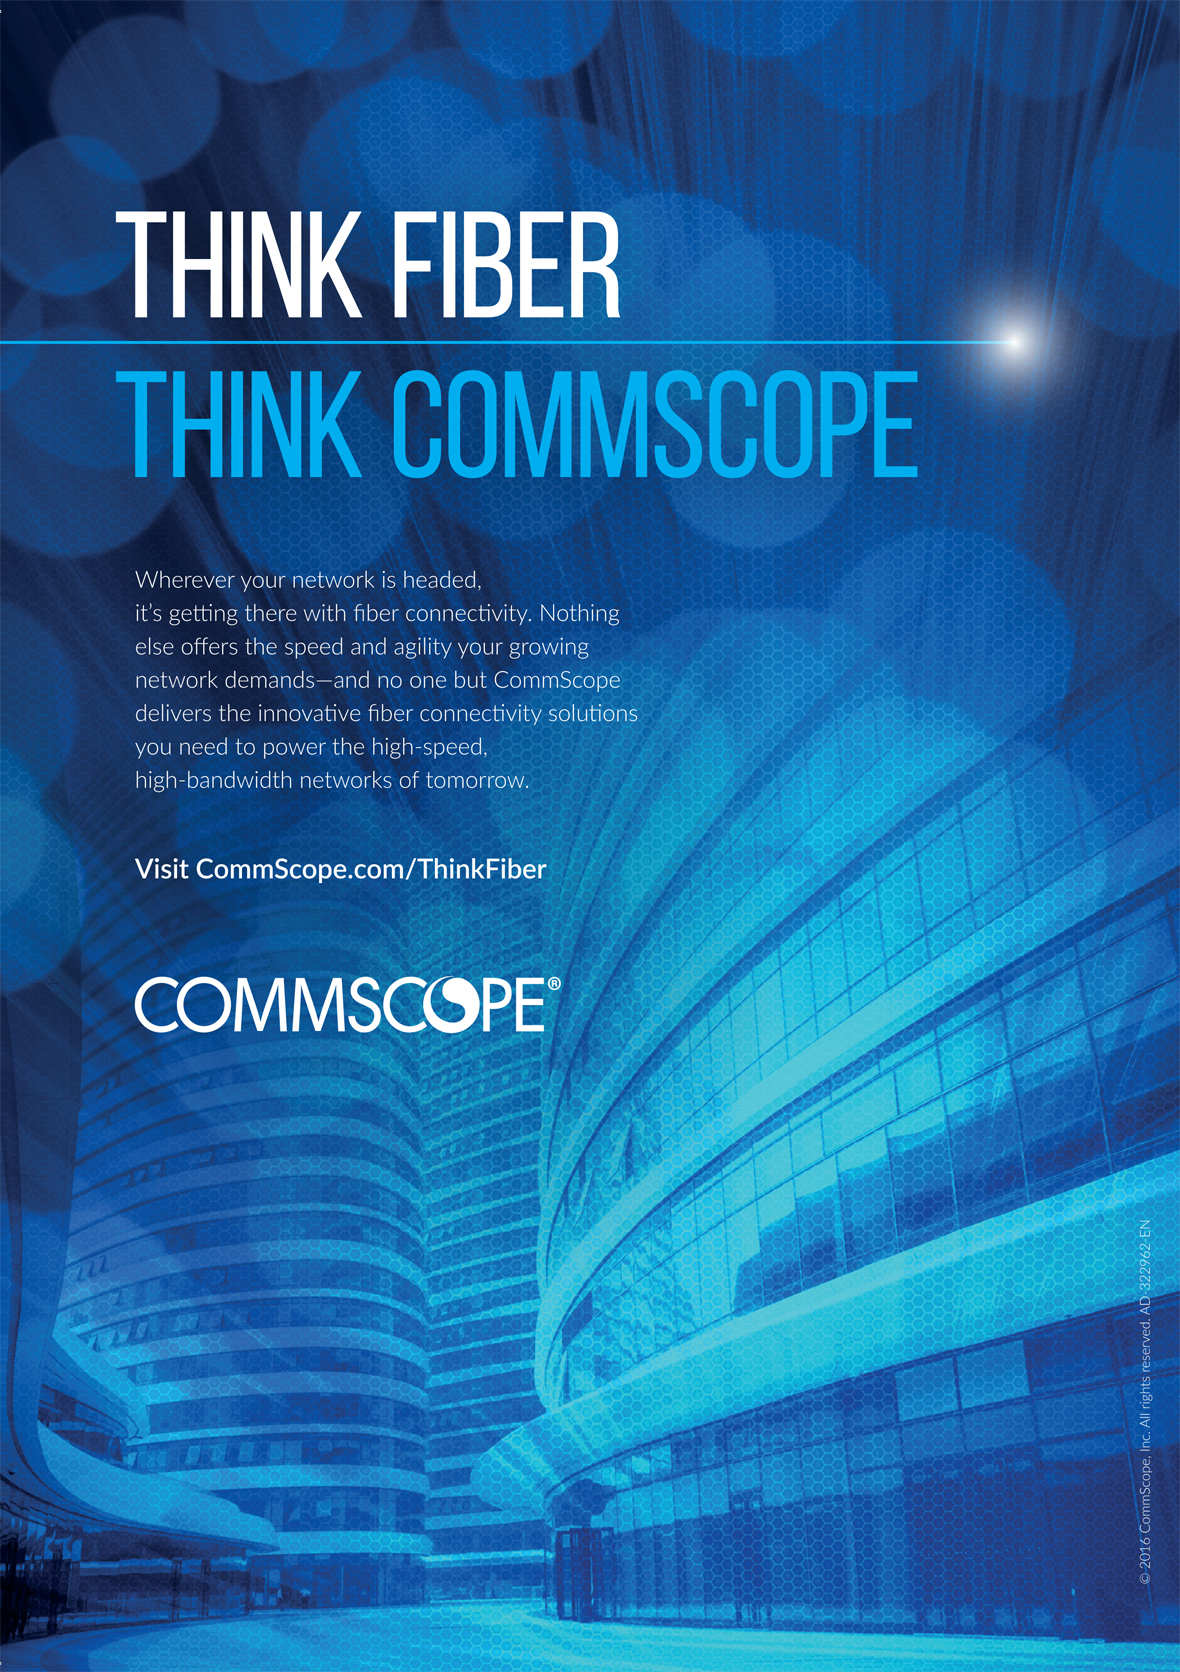 commscope- Most Advertisement Brand by My Brand Book